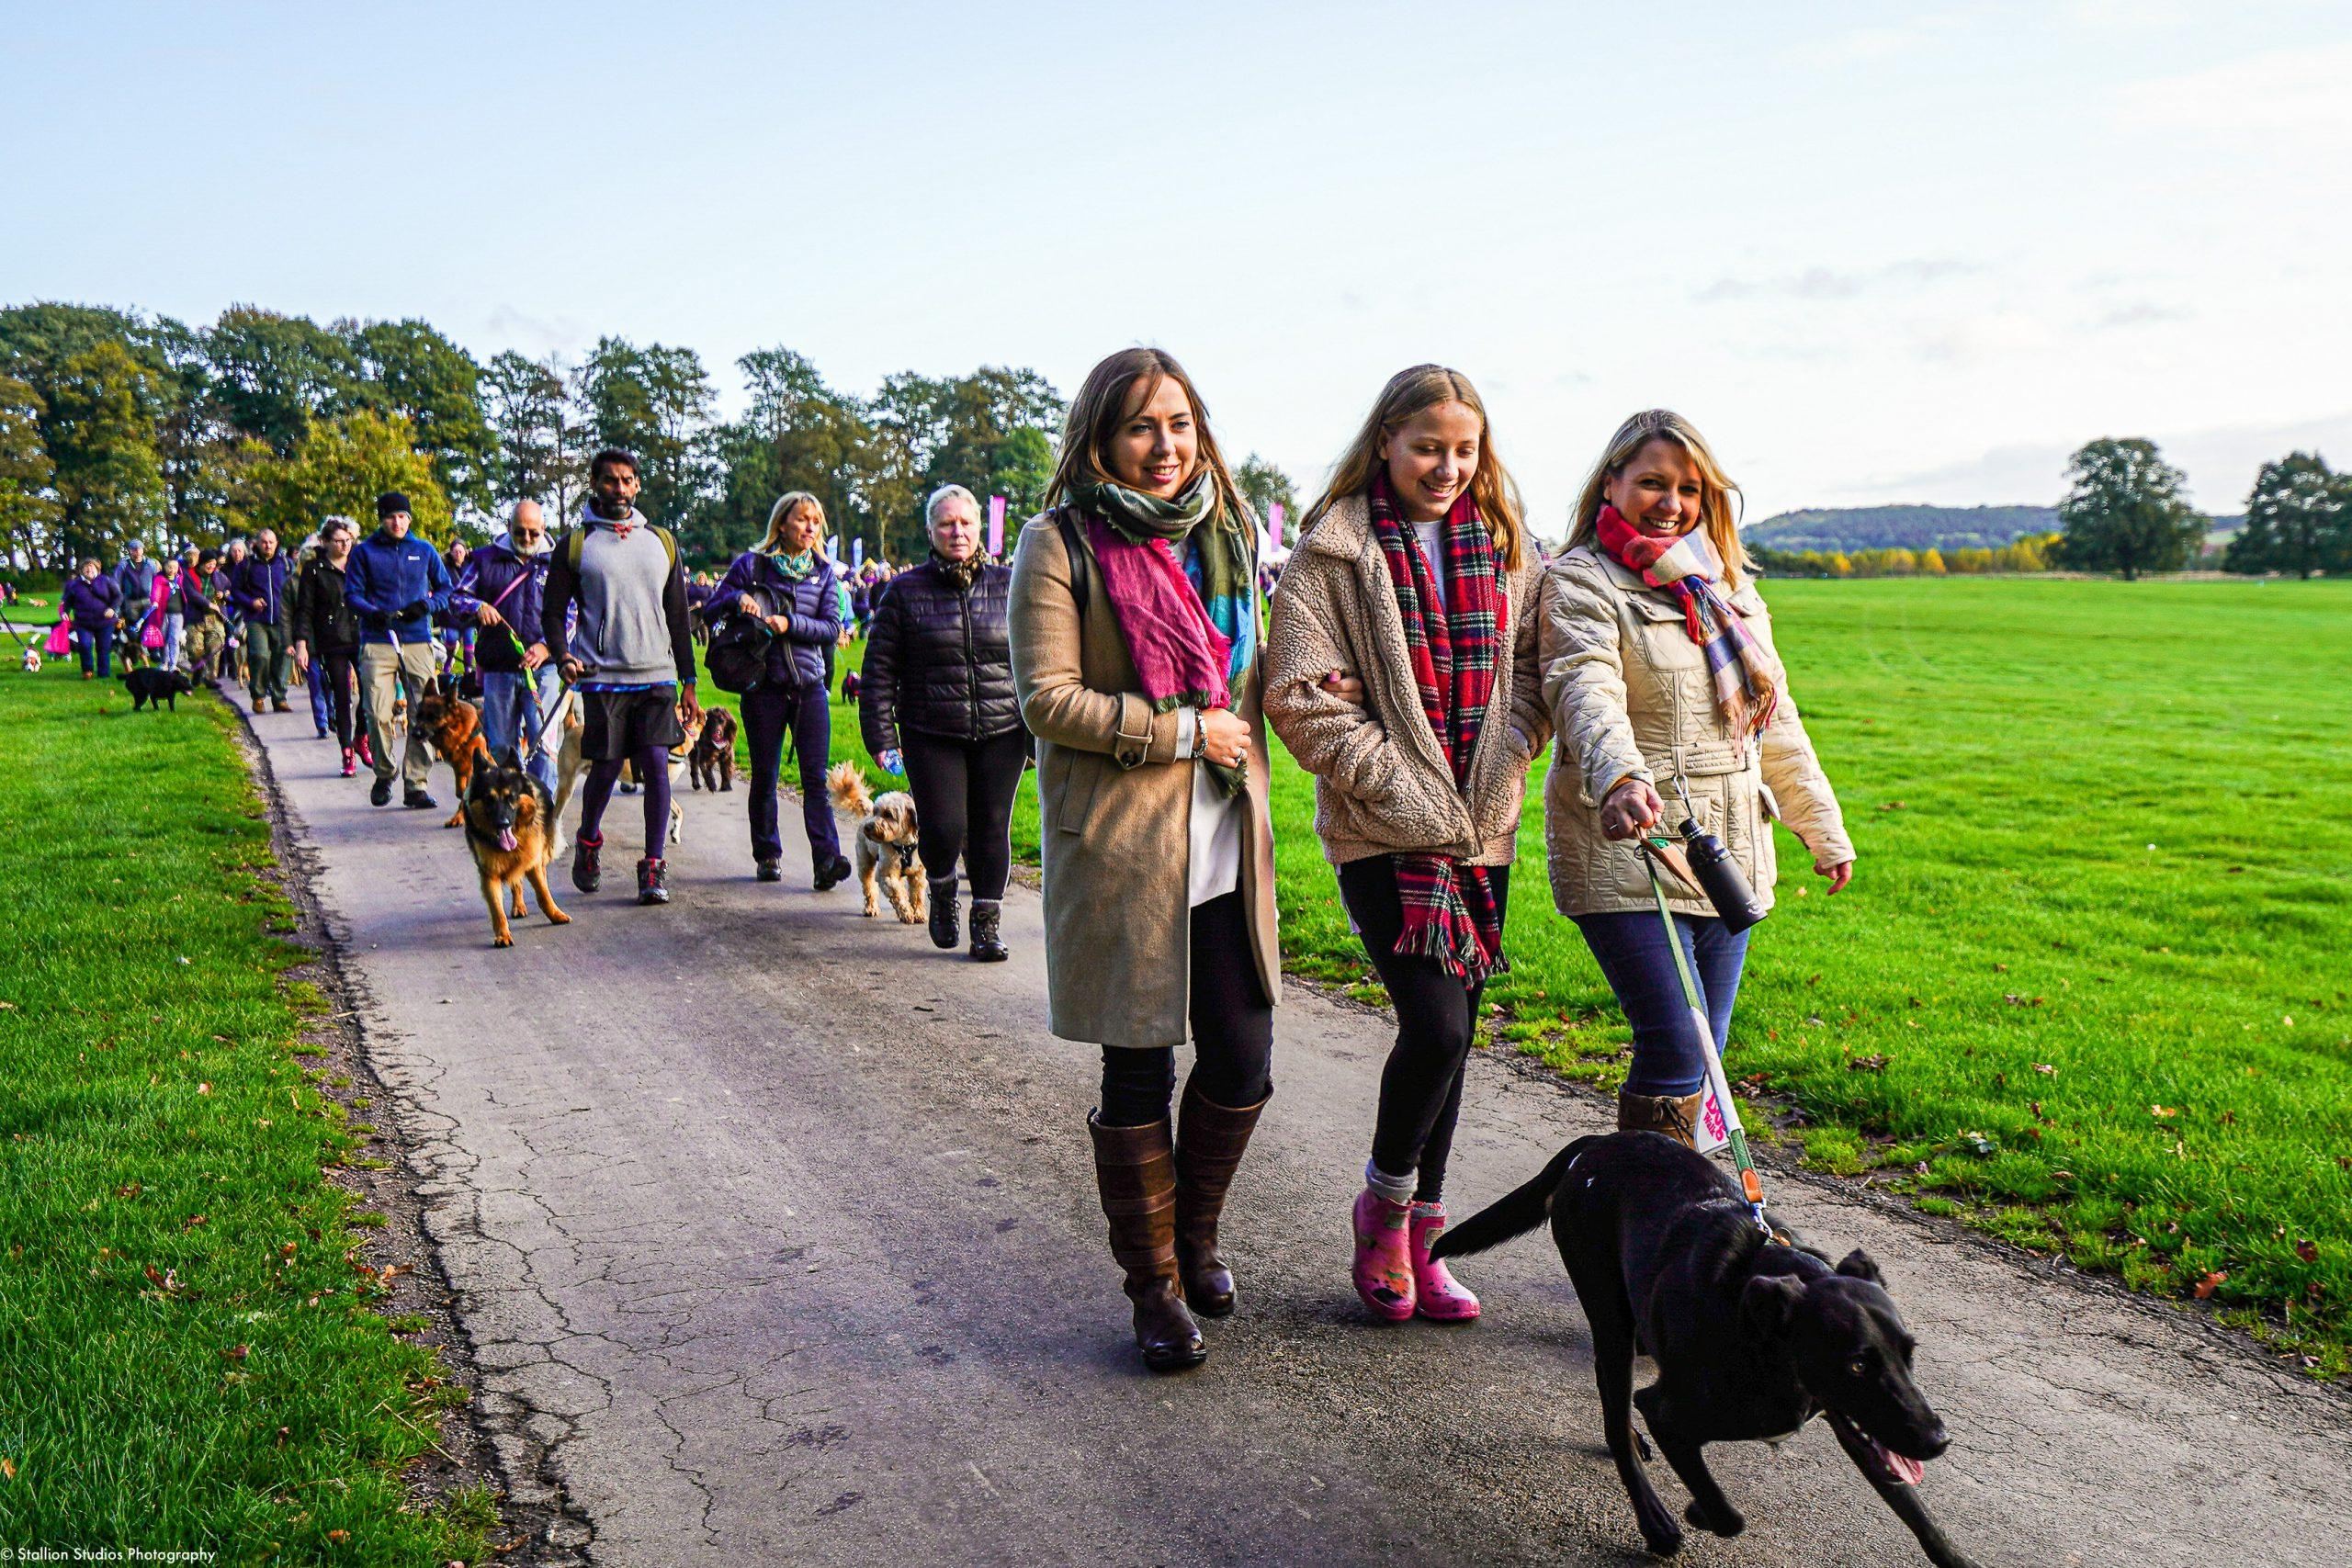 Dog Furiendly Announced as an Official Media Partner For The Big Dog Walk